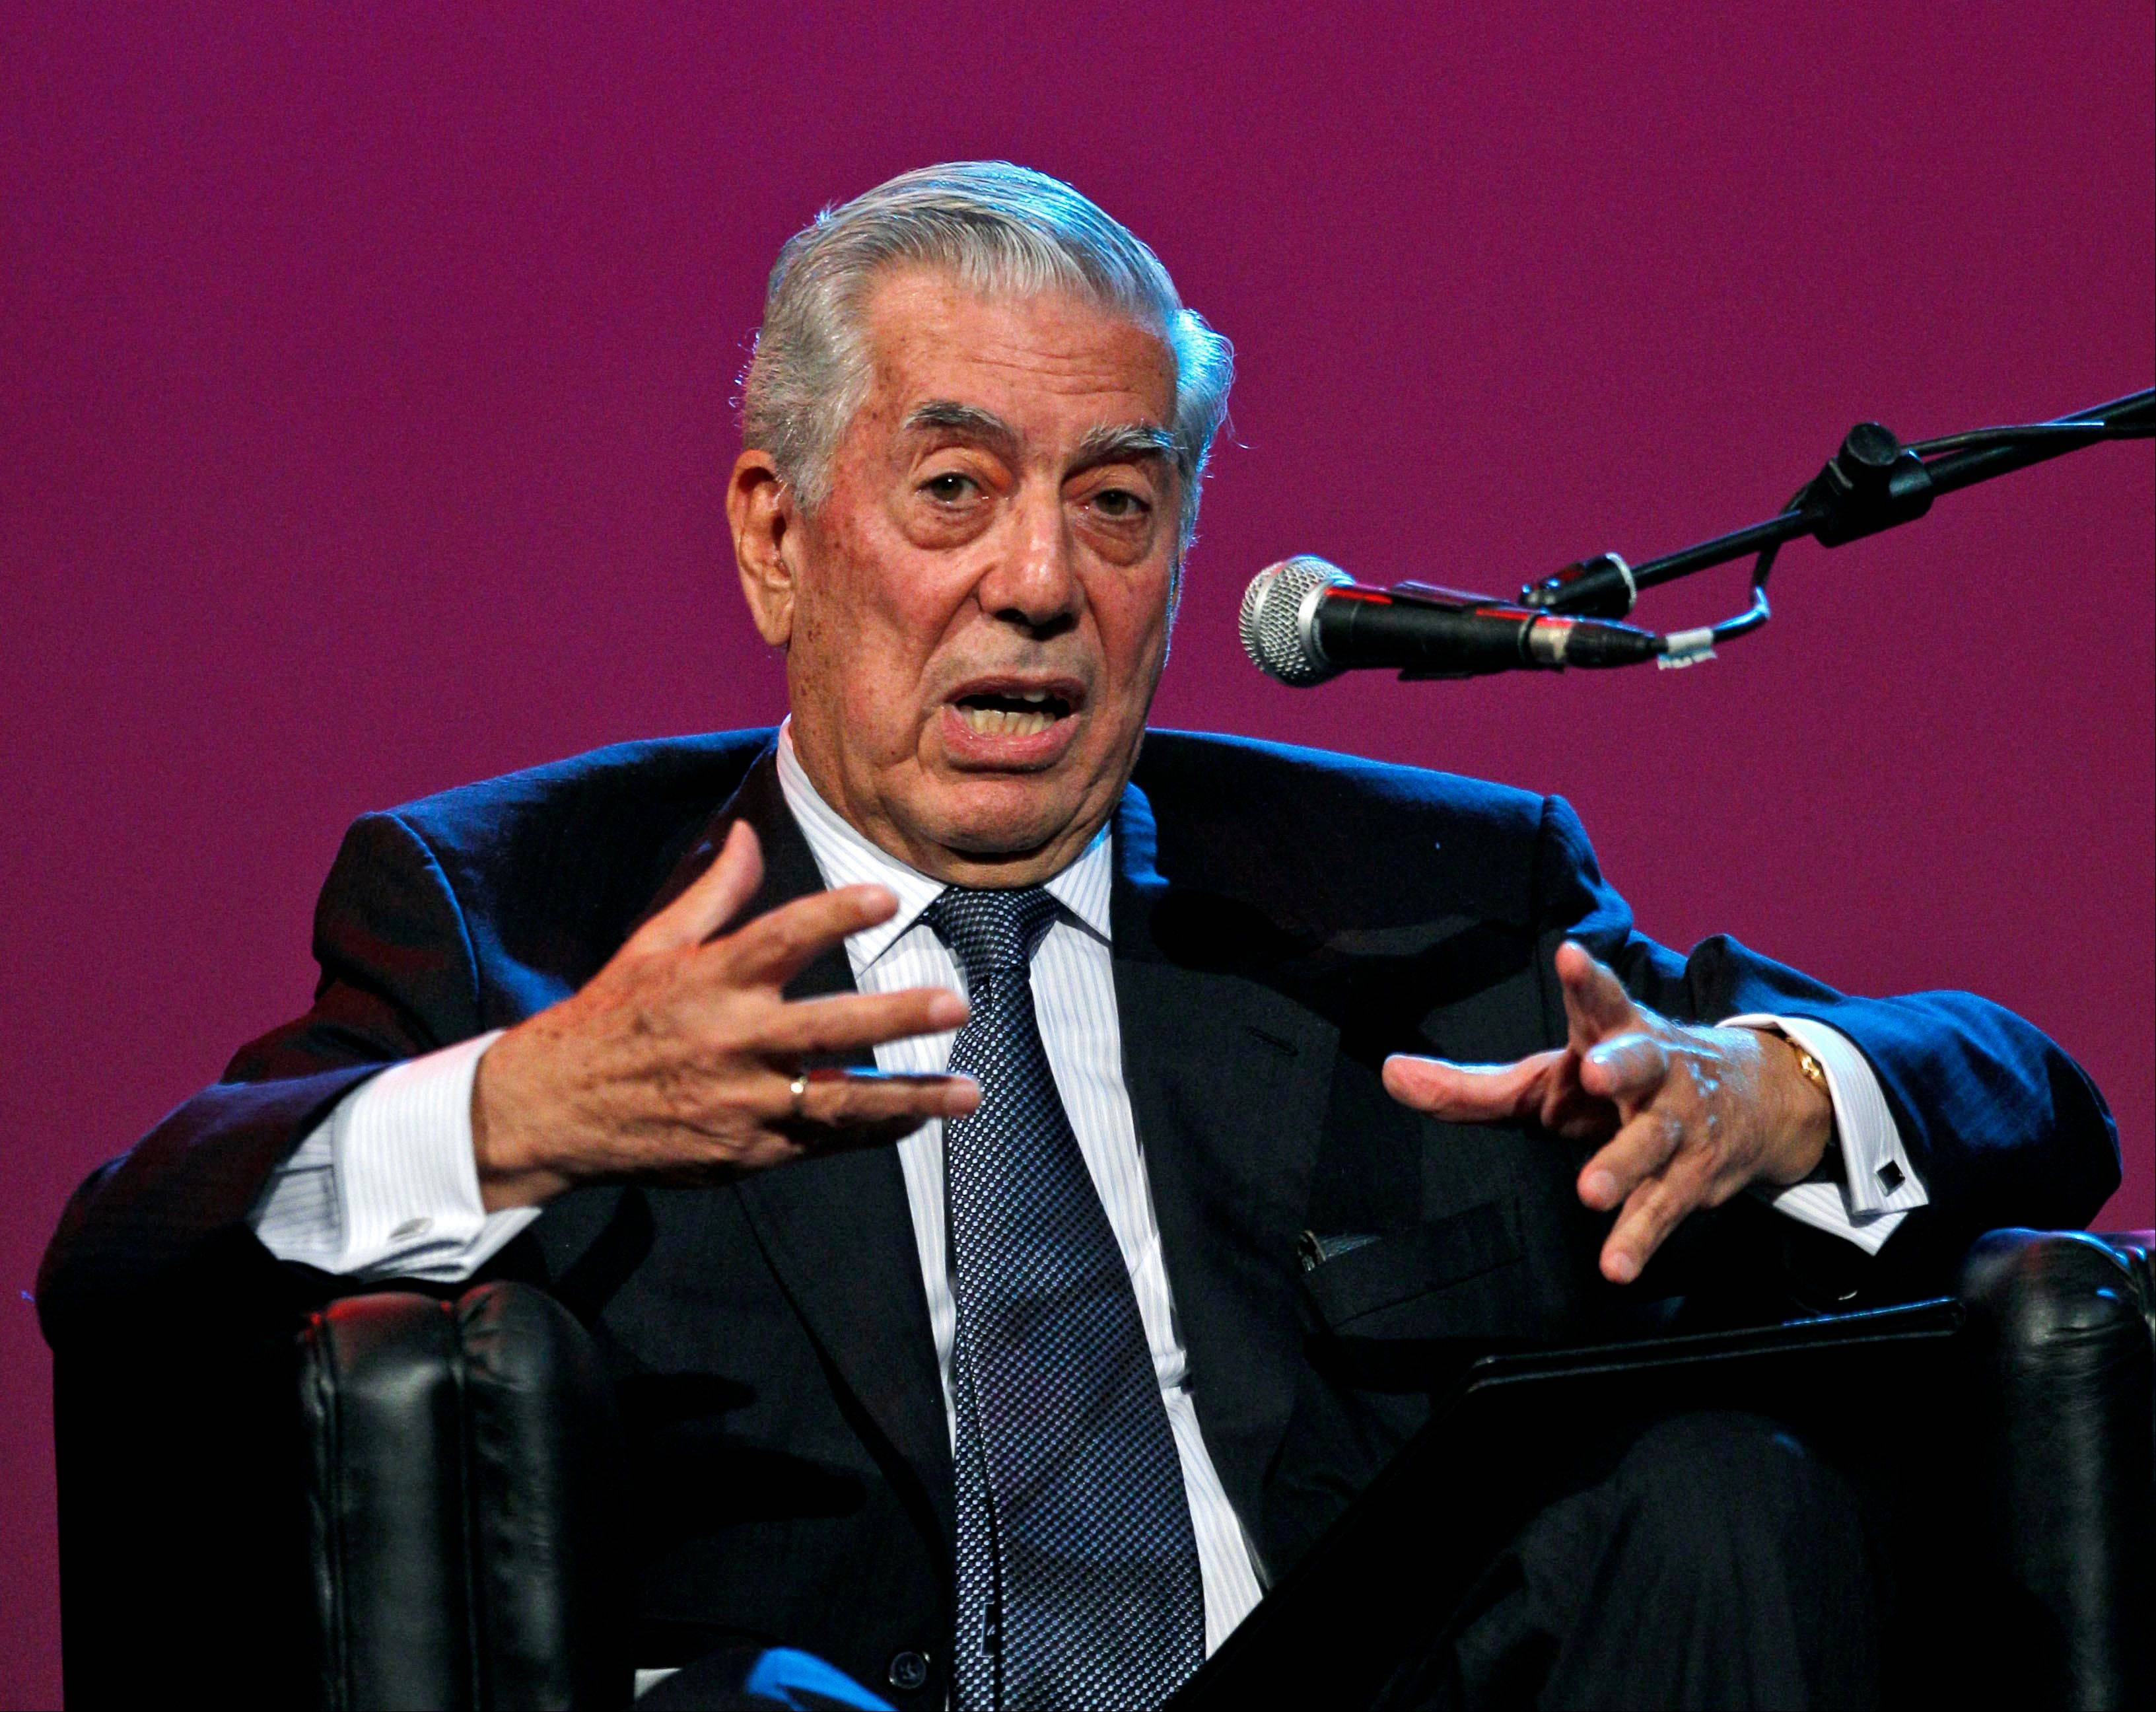 Nobel Literature Prize laureate Mario Vargas Llosa, of Peru, speaking during a conference at the annual book fair in Buenos Aires, Argentina.